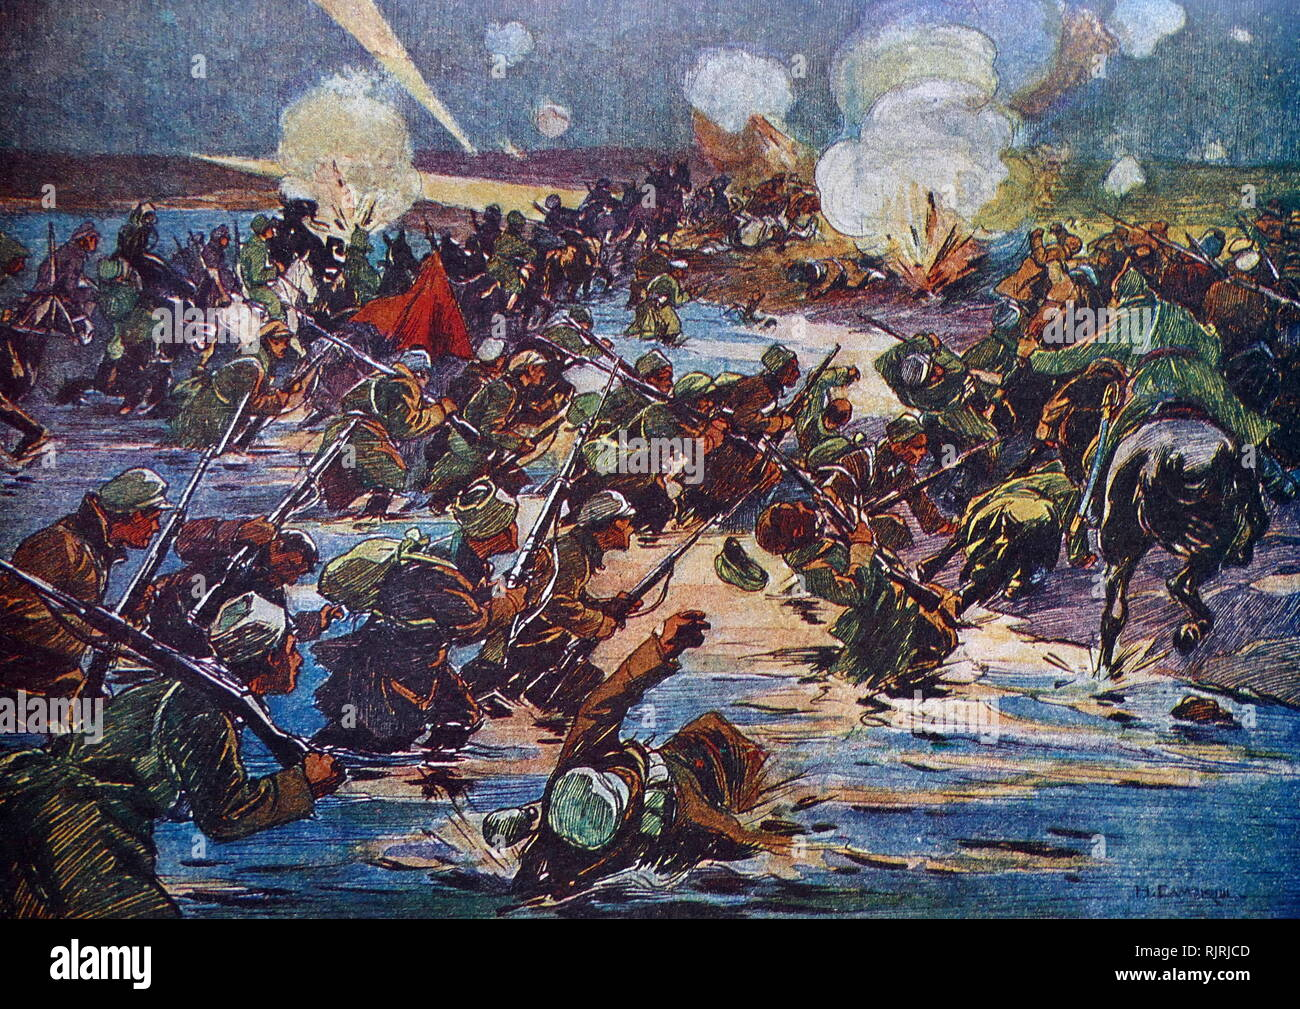 Night attack under Perekop by N Samoki. The Siege of Perekop was an important battle in the Russian Civil War. It took place from 7 to 17 November 1920. The operation allowed offensive troops of the Southern Front of the Red Army under the command of Mikhail Frunze to advance against the White Russian army of General Pyotr Nikolayevich Wrangel to break through the fortifications at Perekop and Sivash, leading to the Red Army occupation of the Crimea. - Stock Image